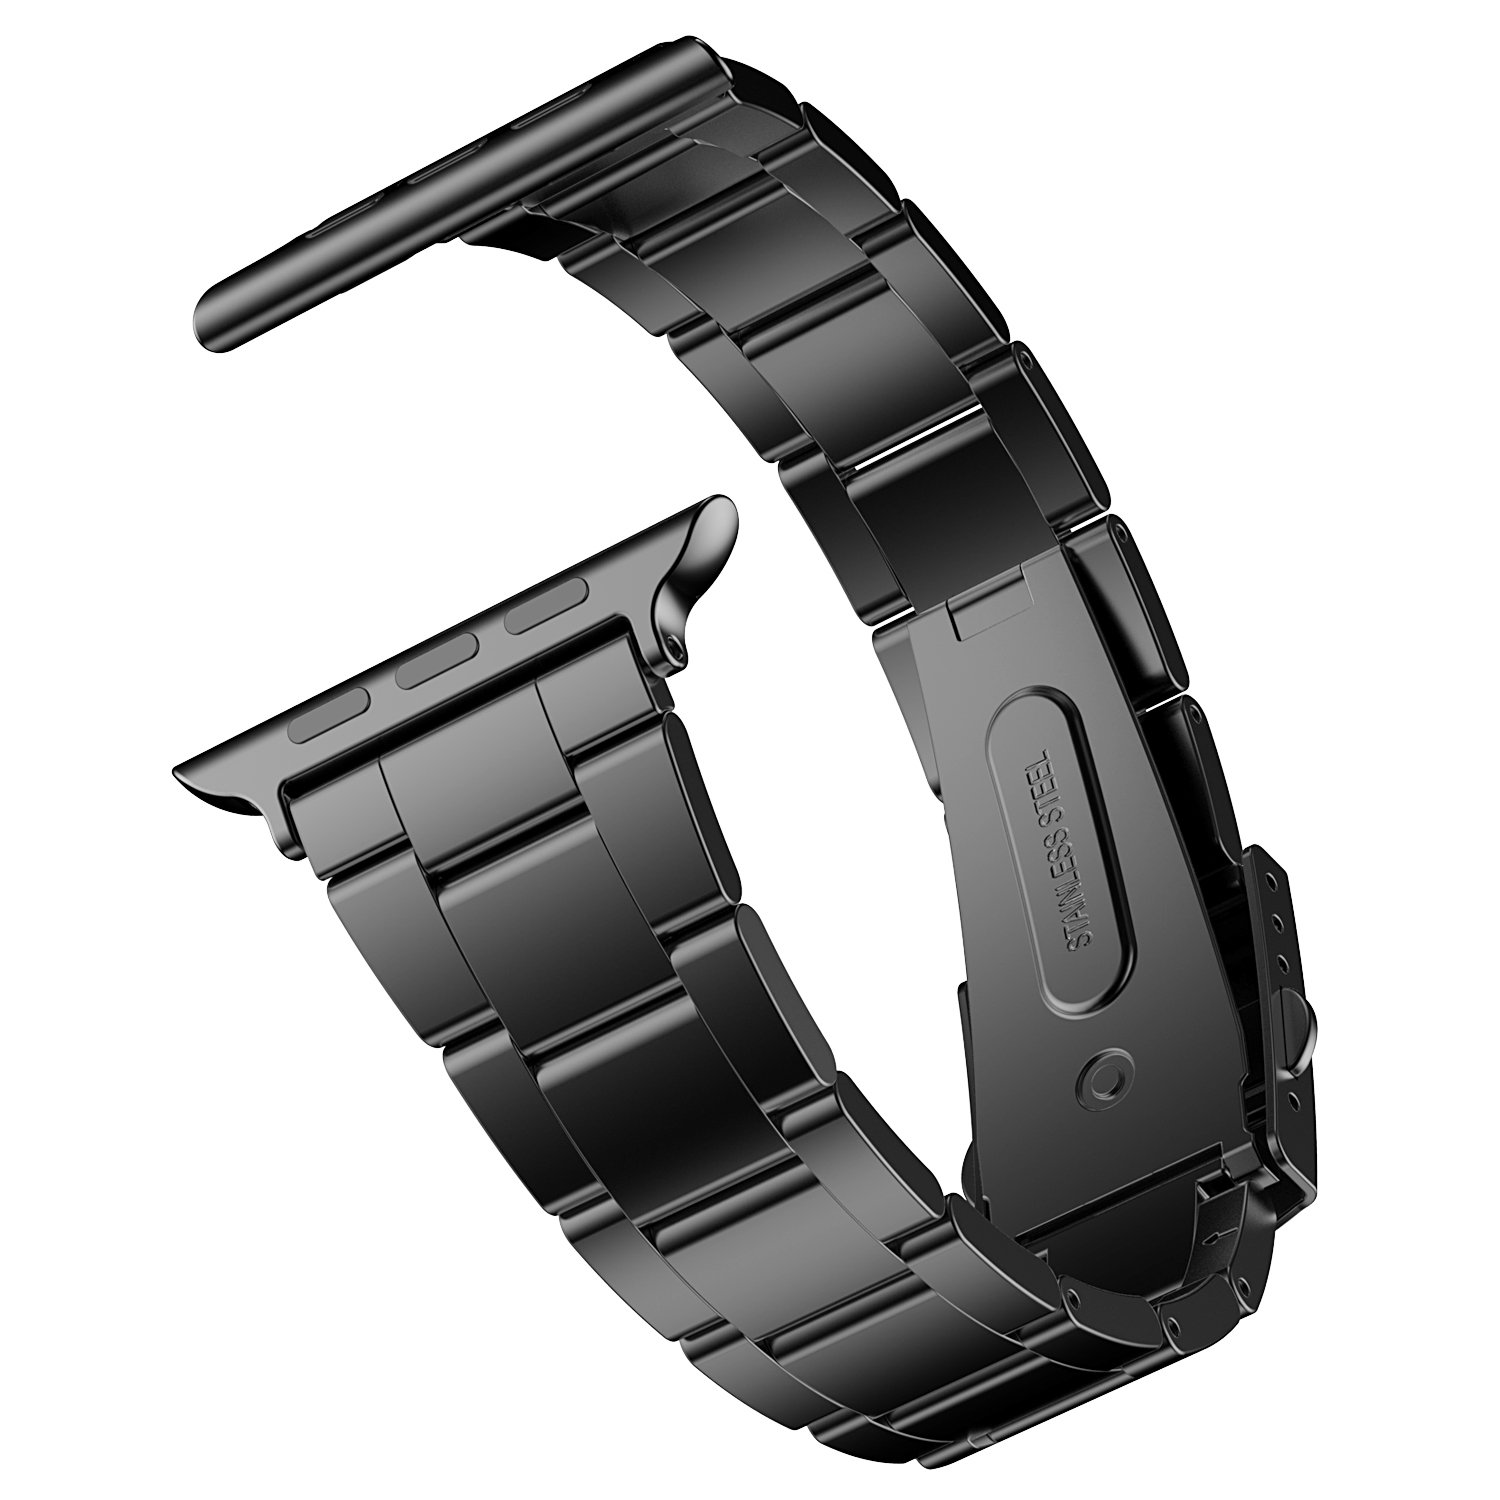 JETech Replacement Band for Apple Watch 42mm and 44mm Series 1 2 3 4, Stainless Steel, Black product image